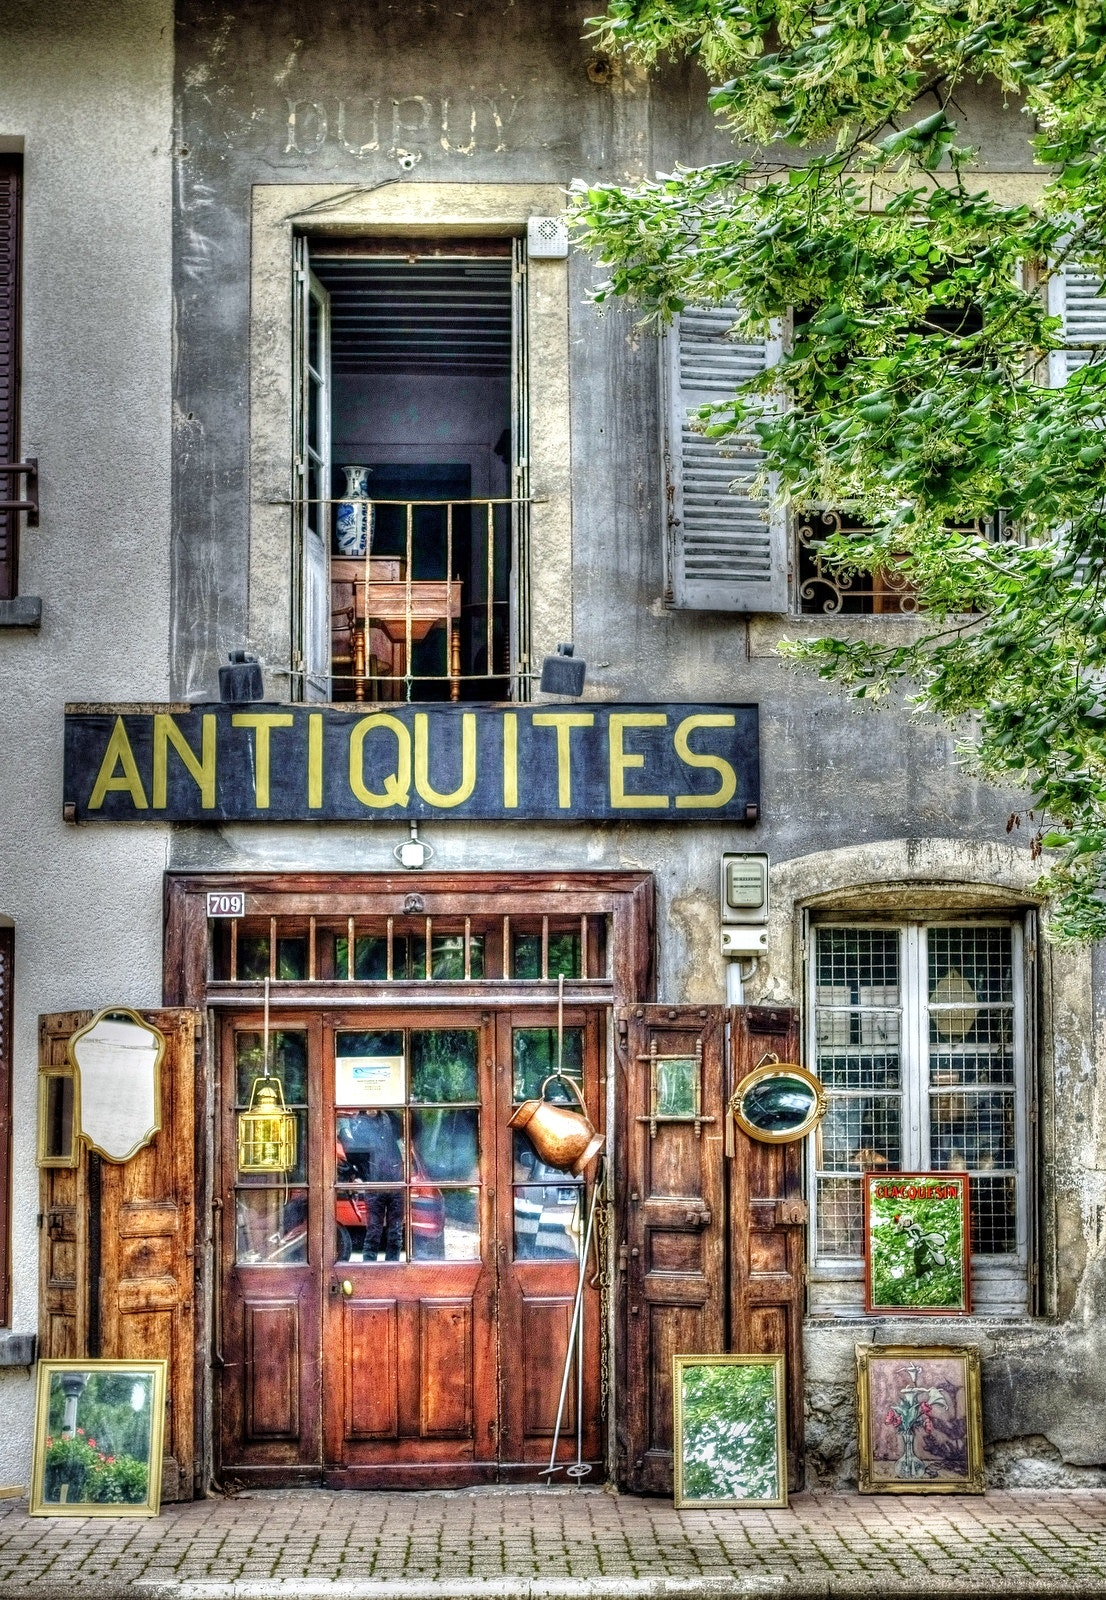 Antiquites signage photo